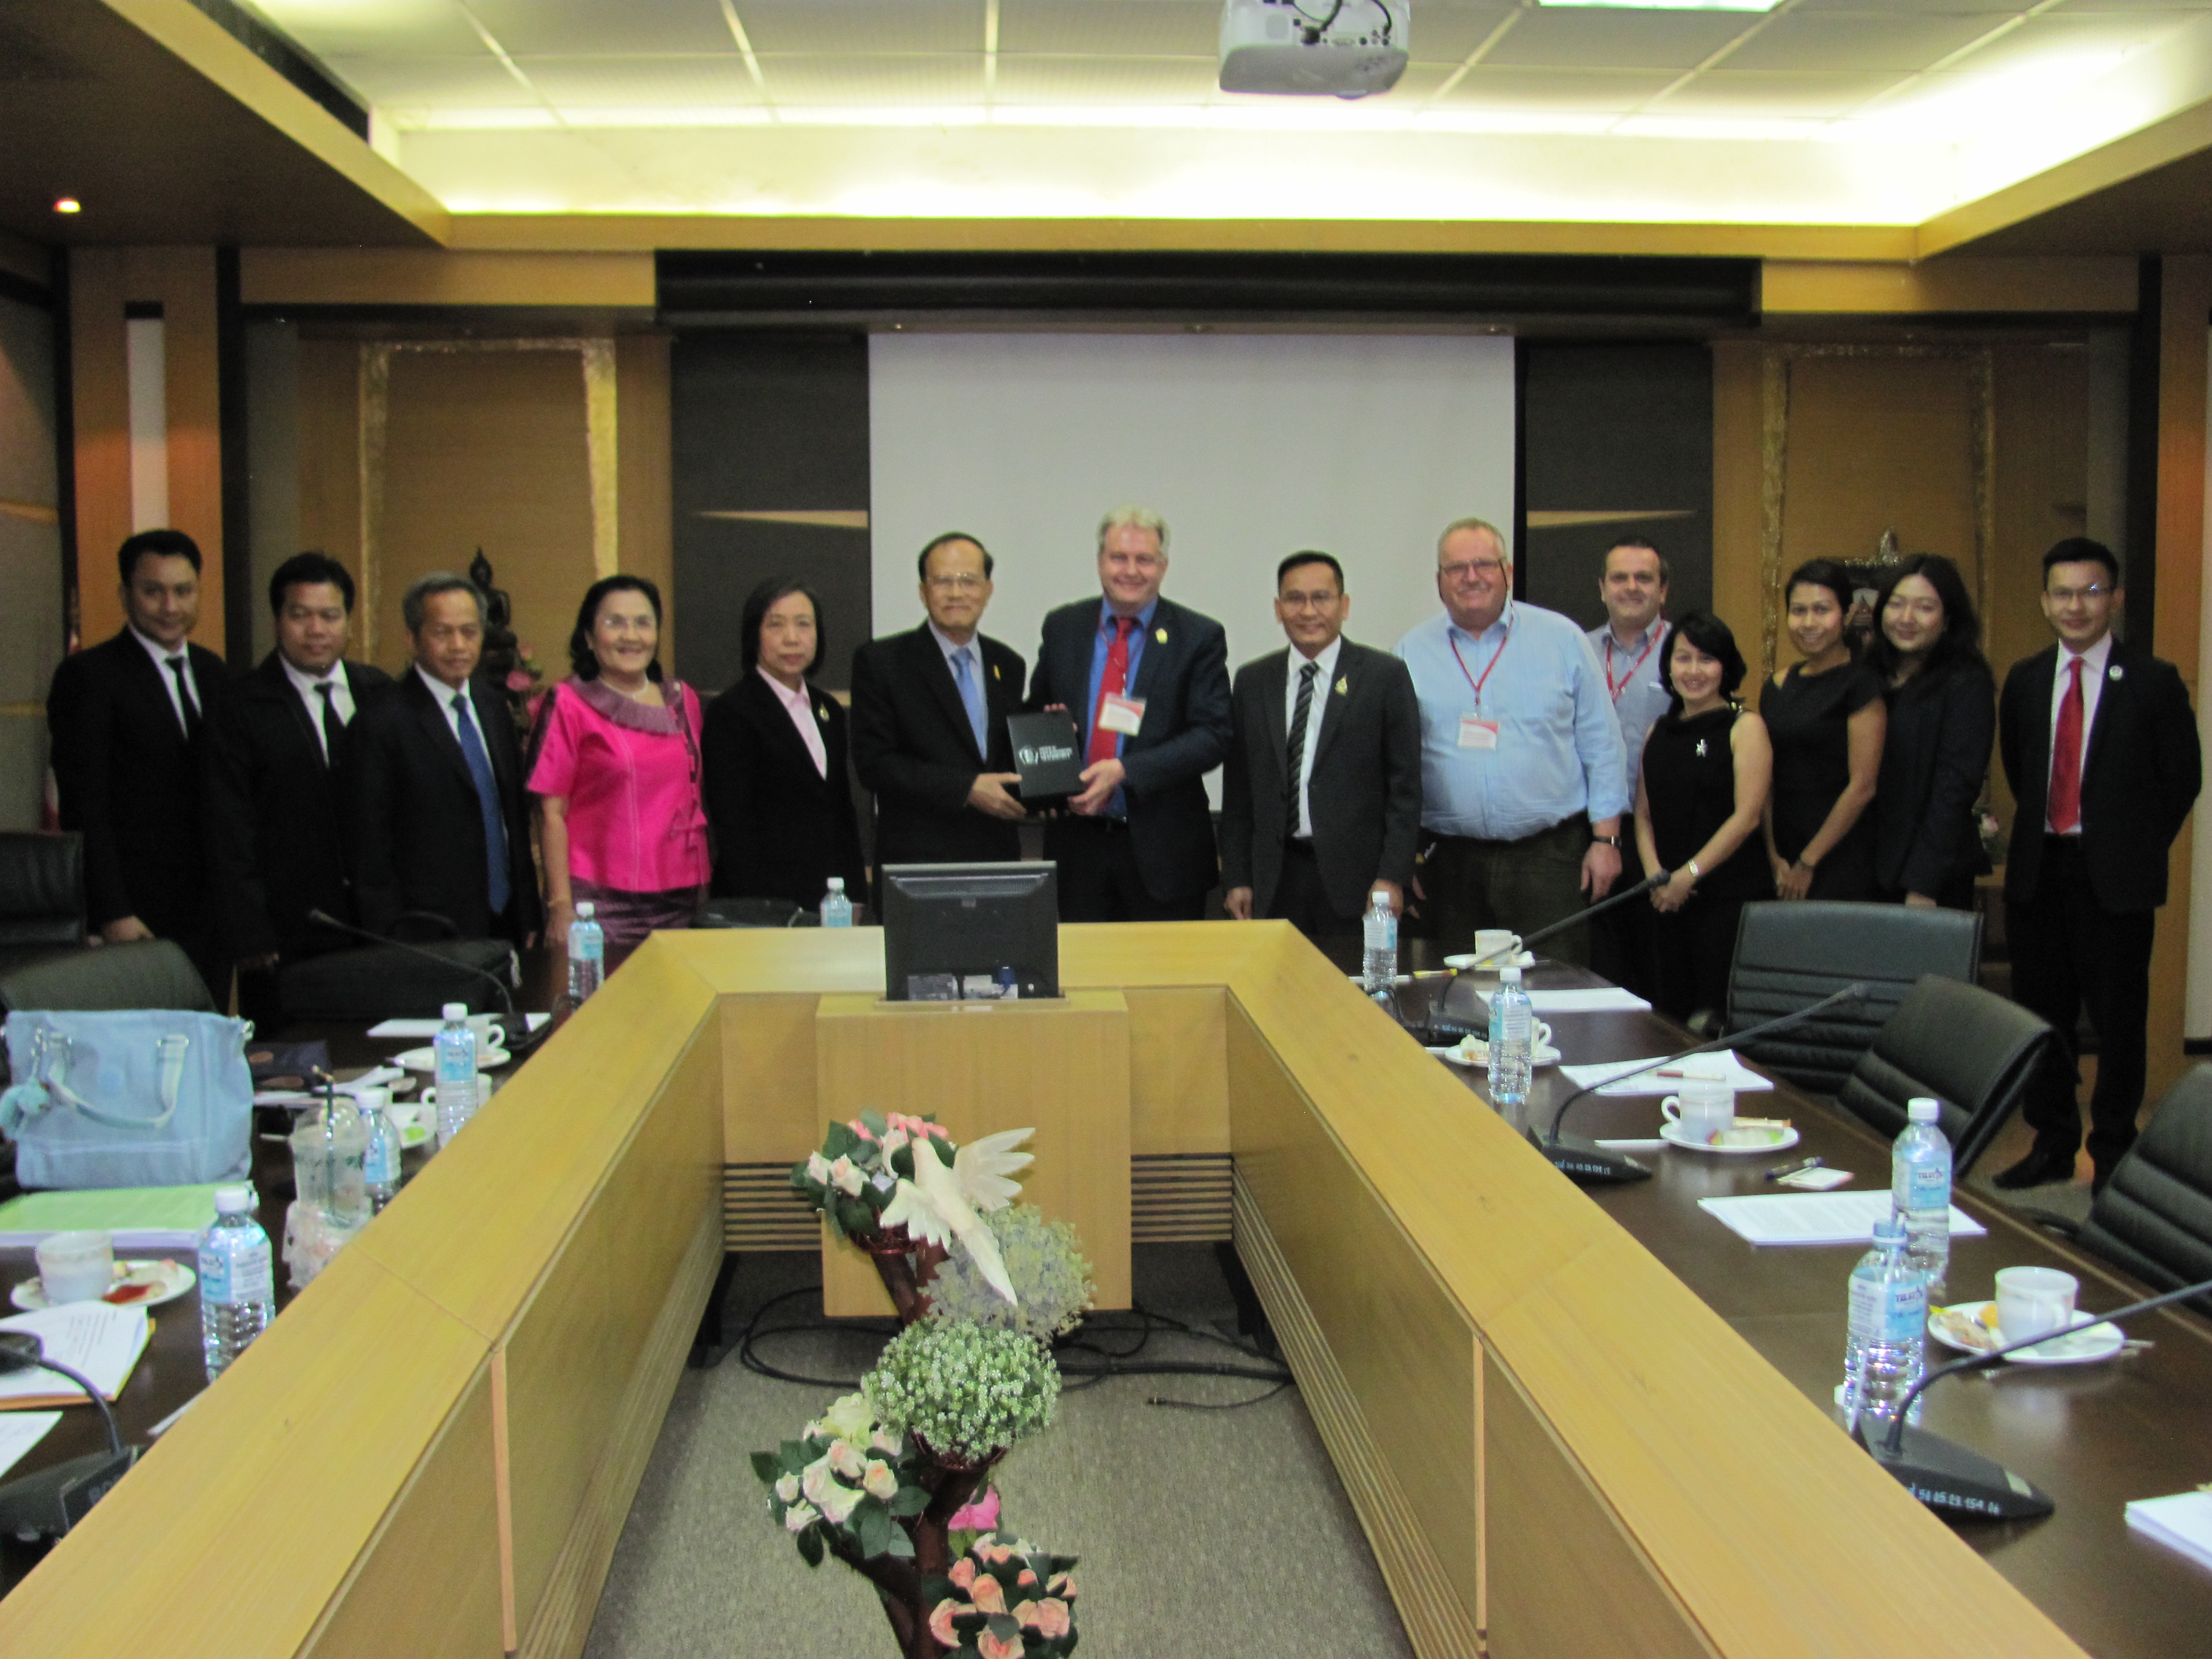 VC with President and representatives of the Association of Rajabhat Universities